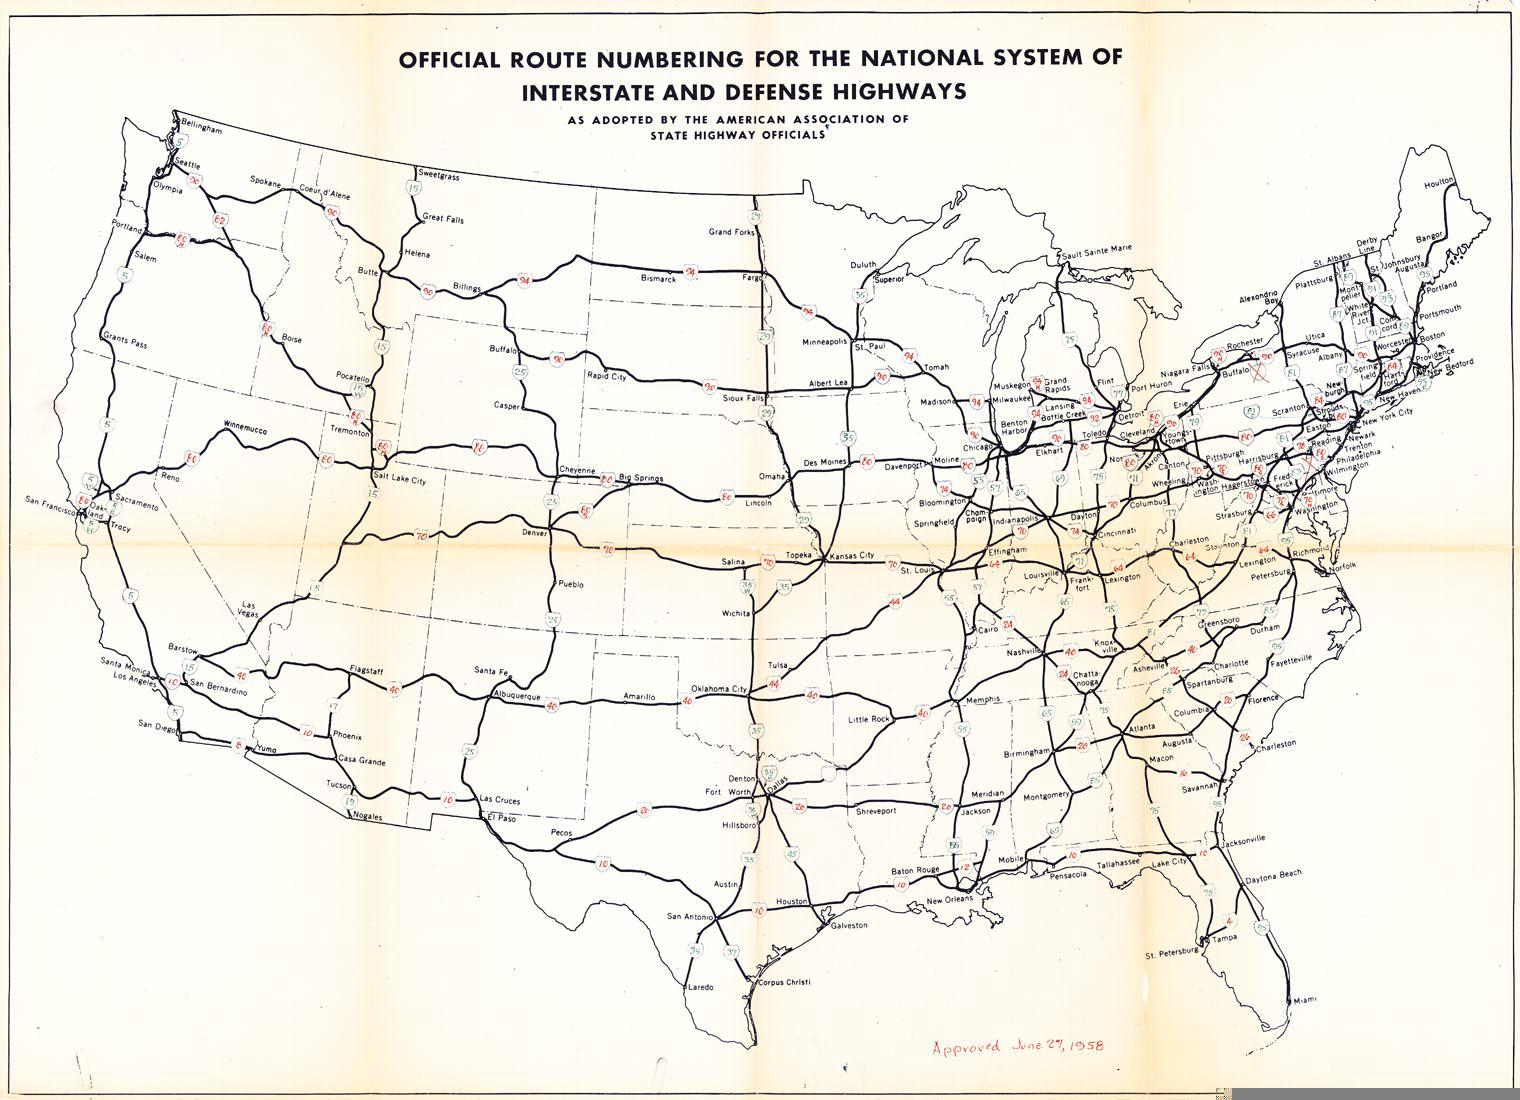 National System of Interstate And Defense Highways 1958